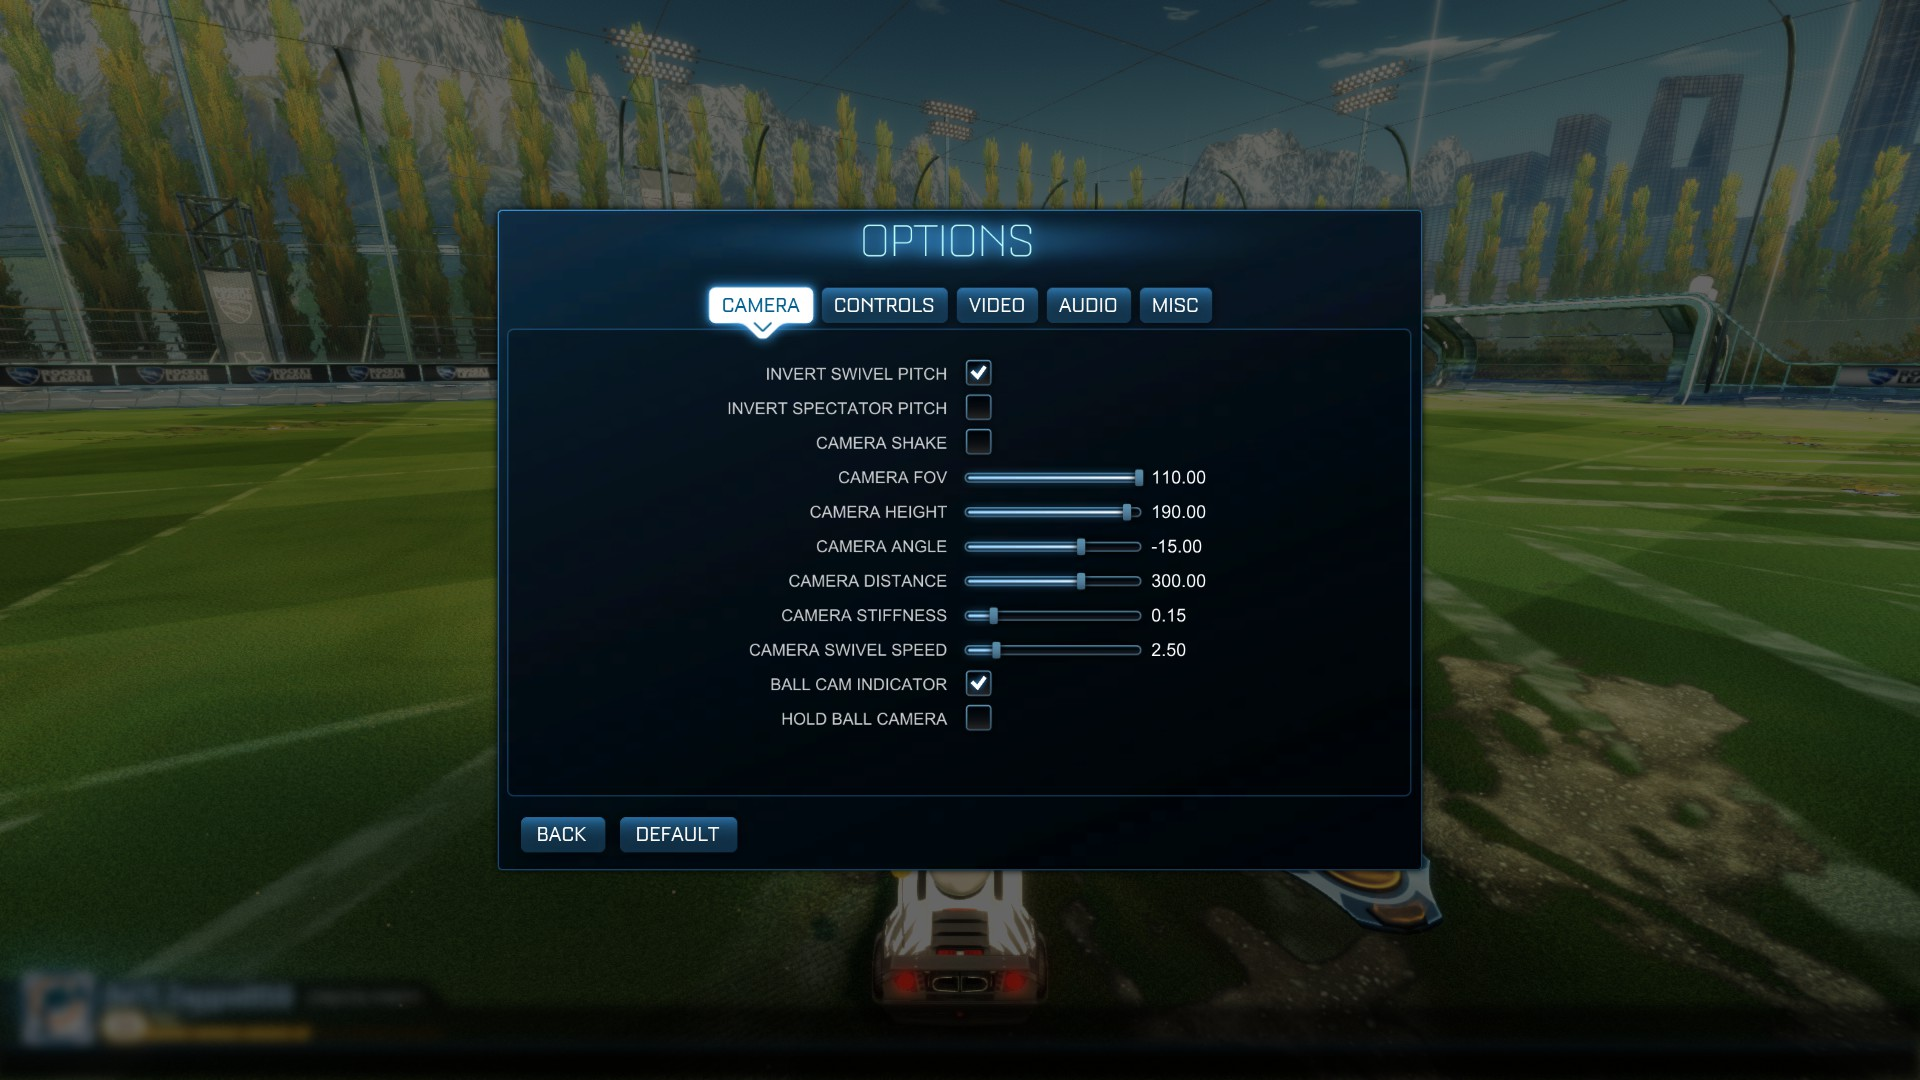 rocket-league-camera-settings.jpg